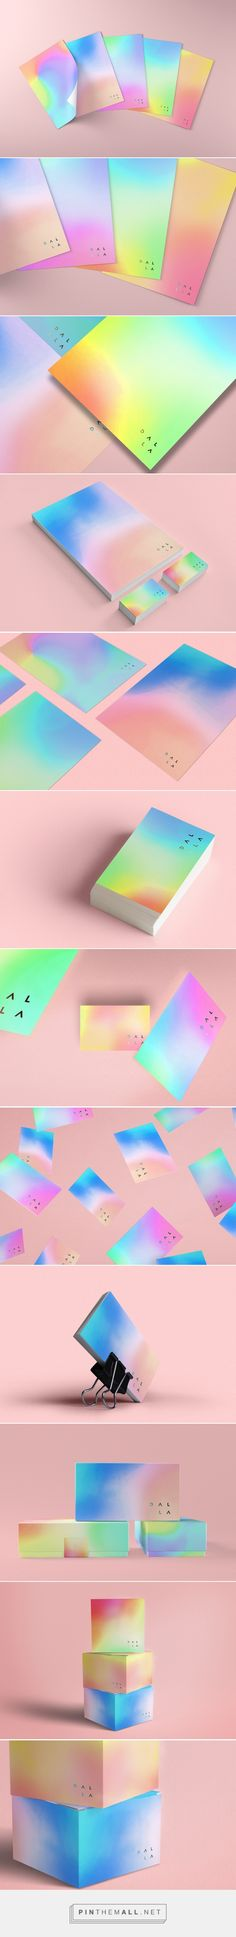 Cartas de color